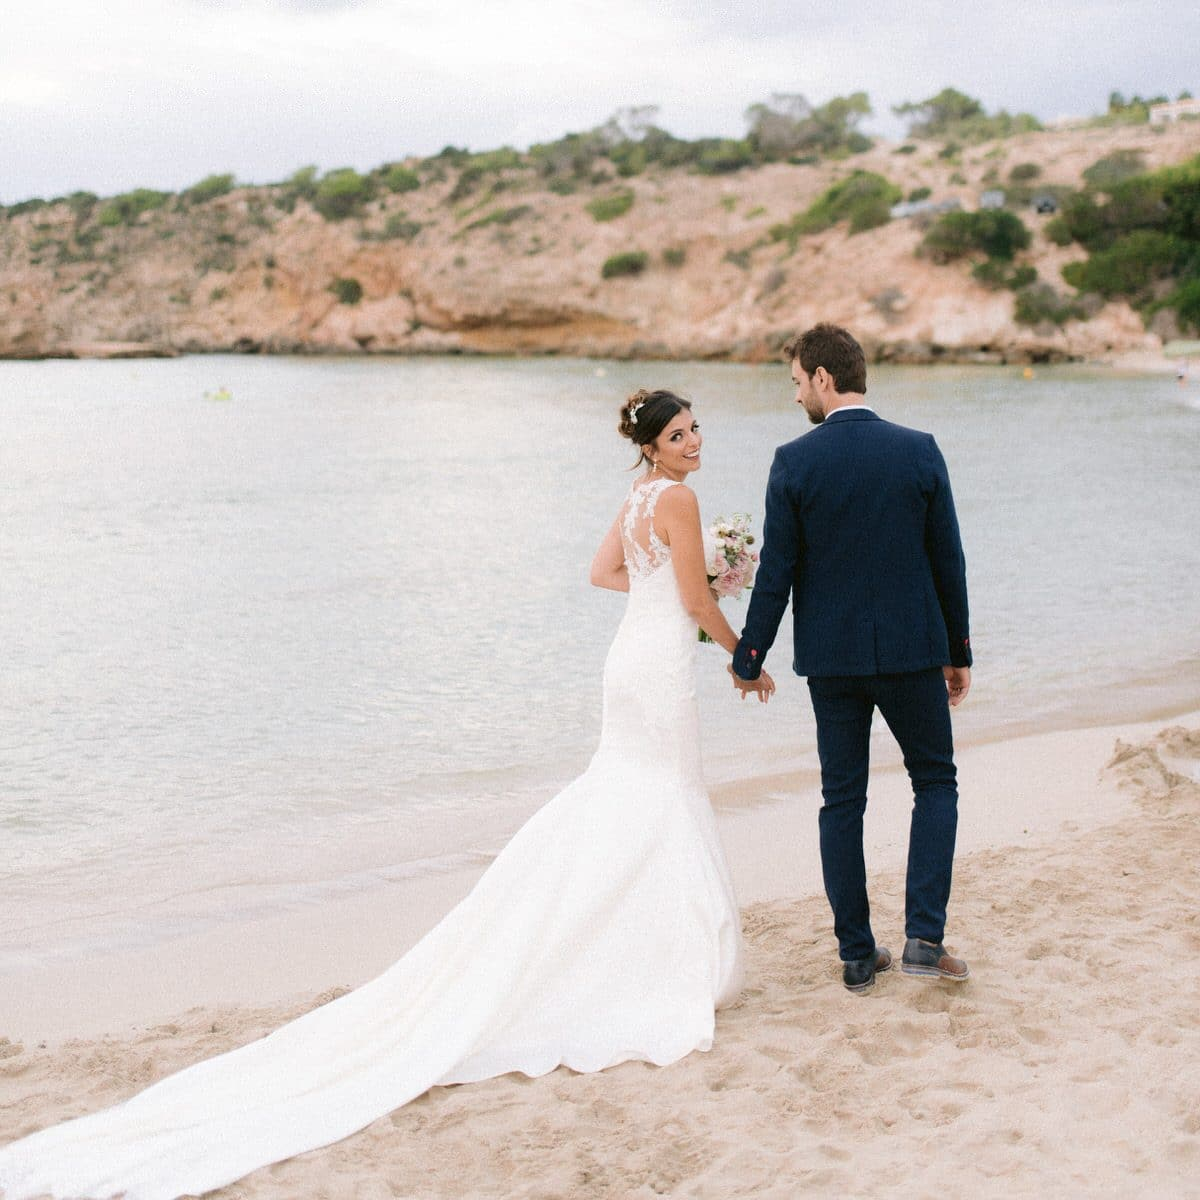 Wedding Photographer, Cotton Beach Ibiza, Youri Claessens Photography